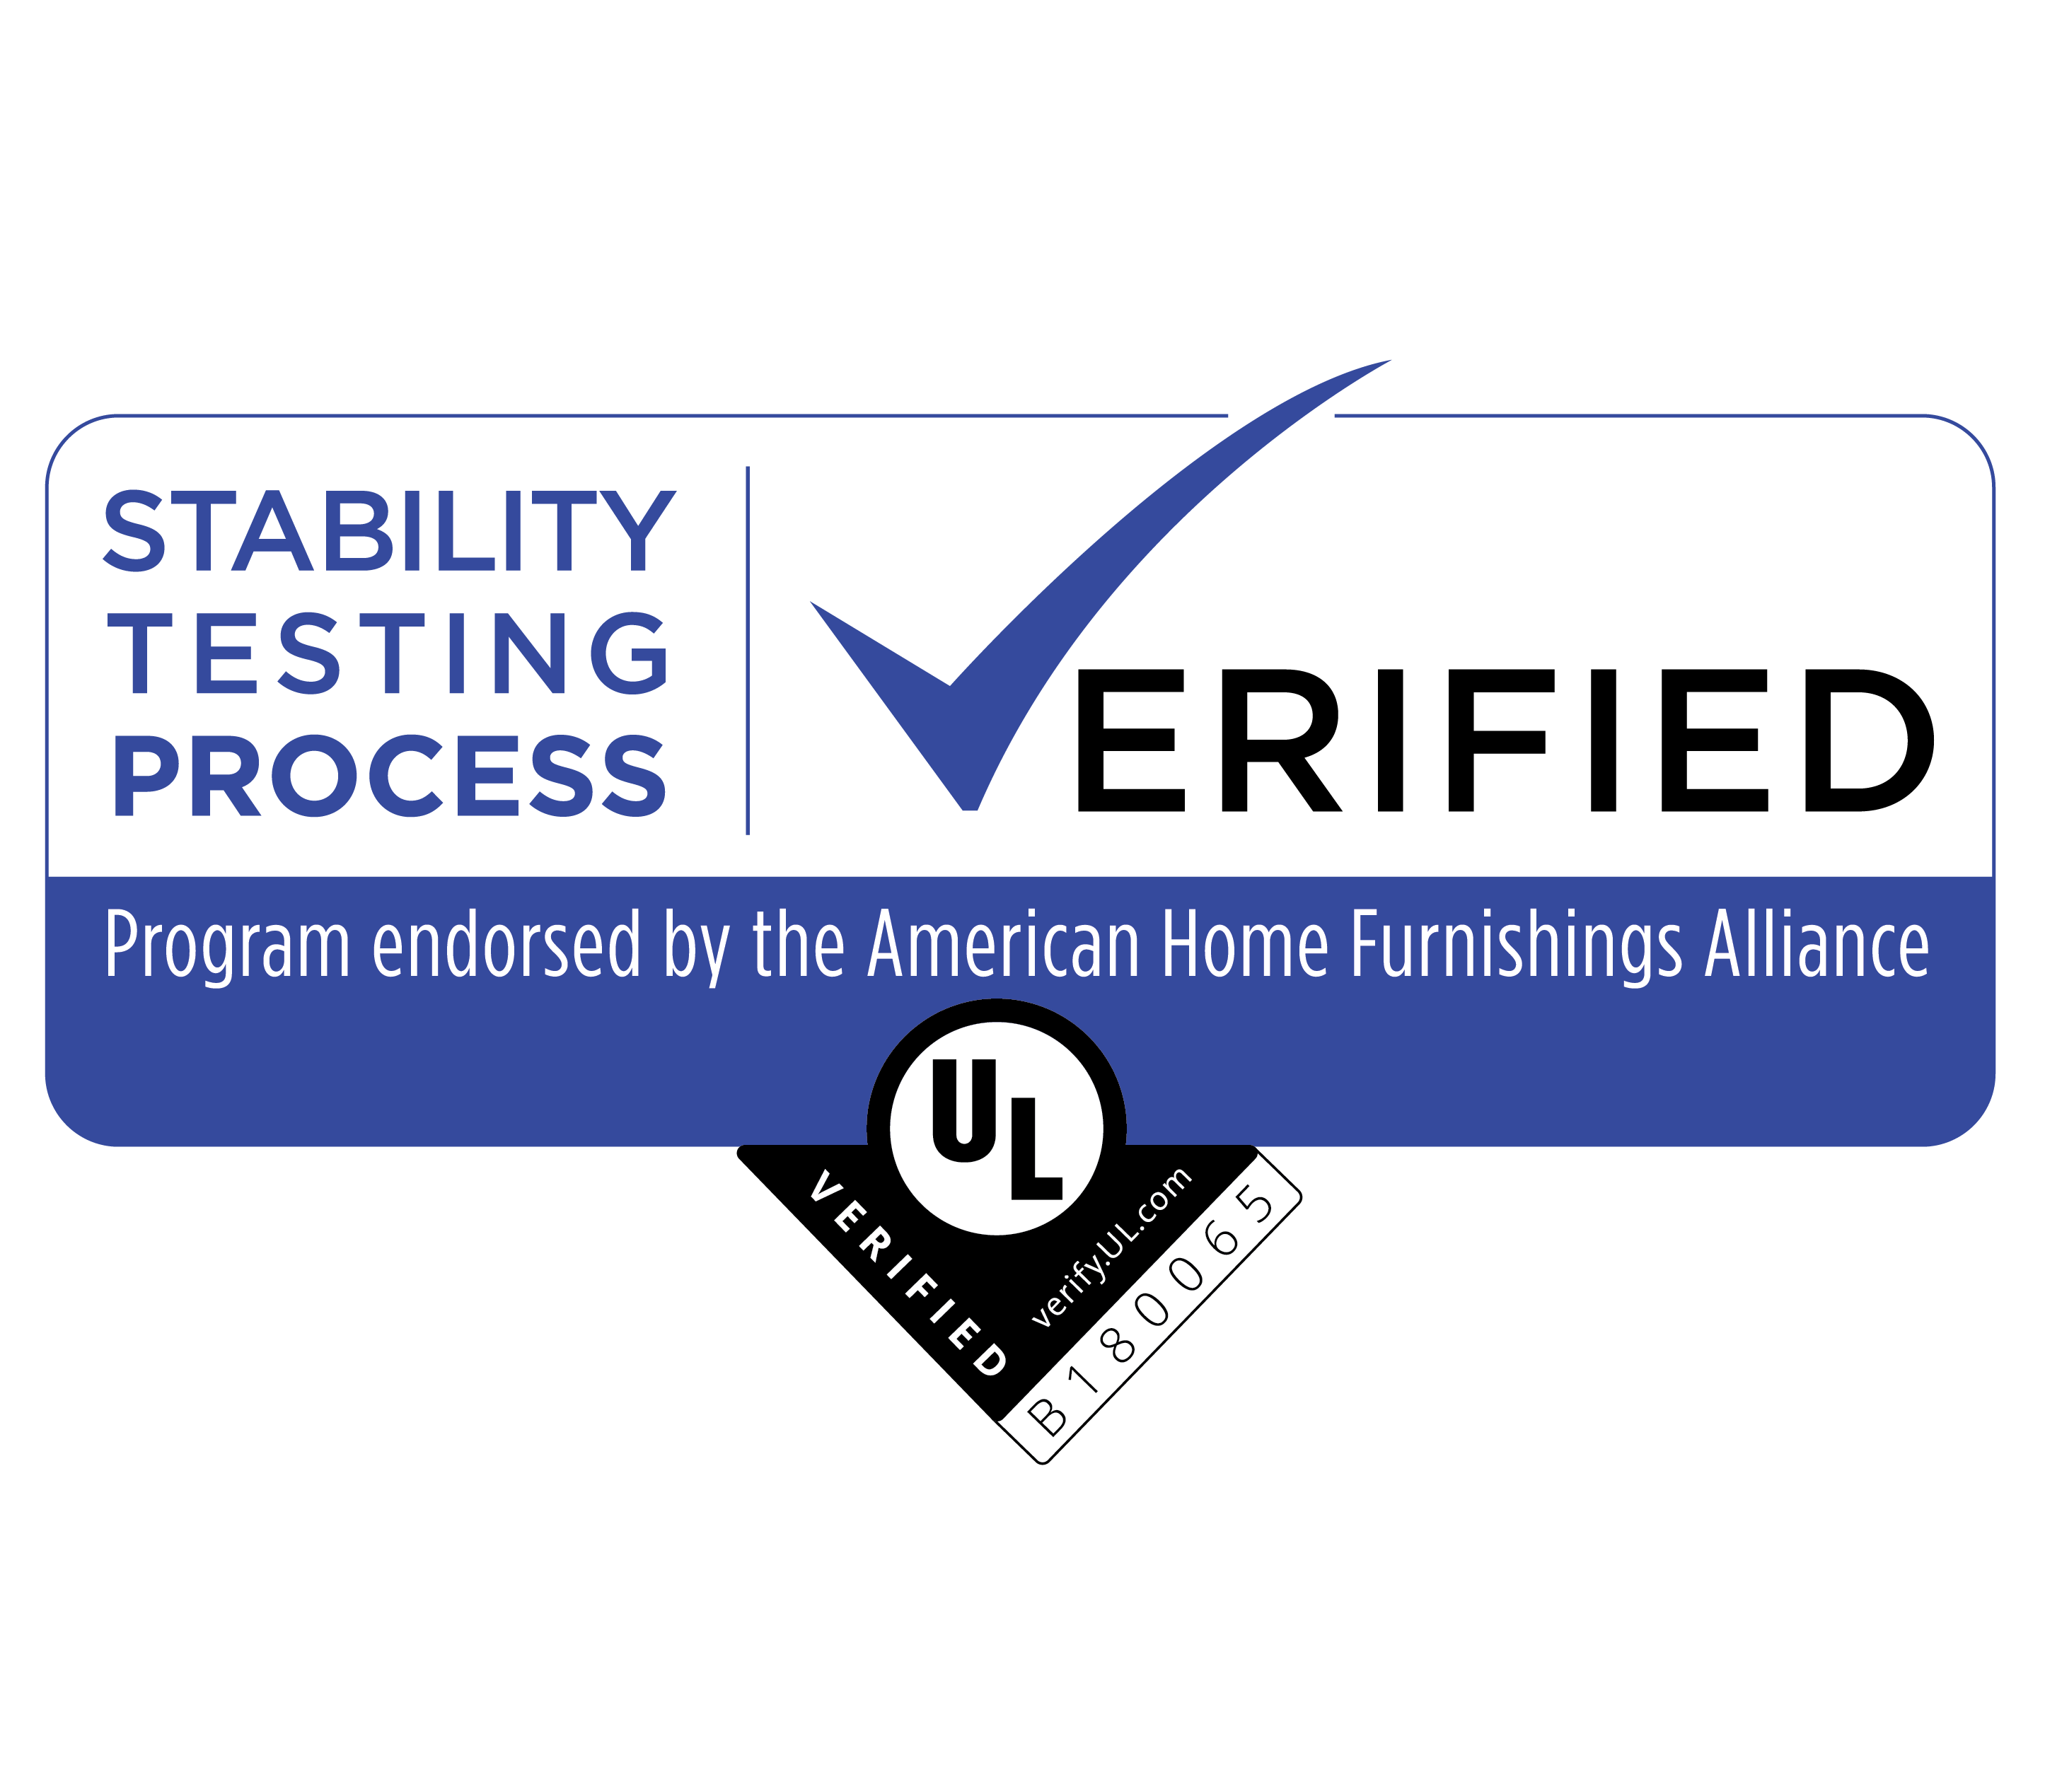 Stability Testing Process image